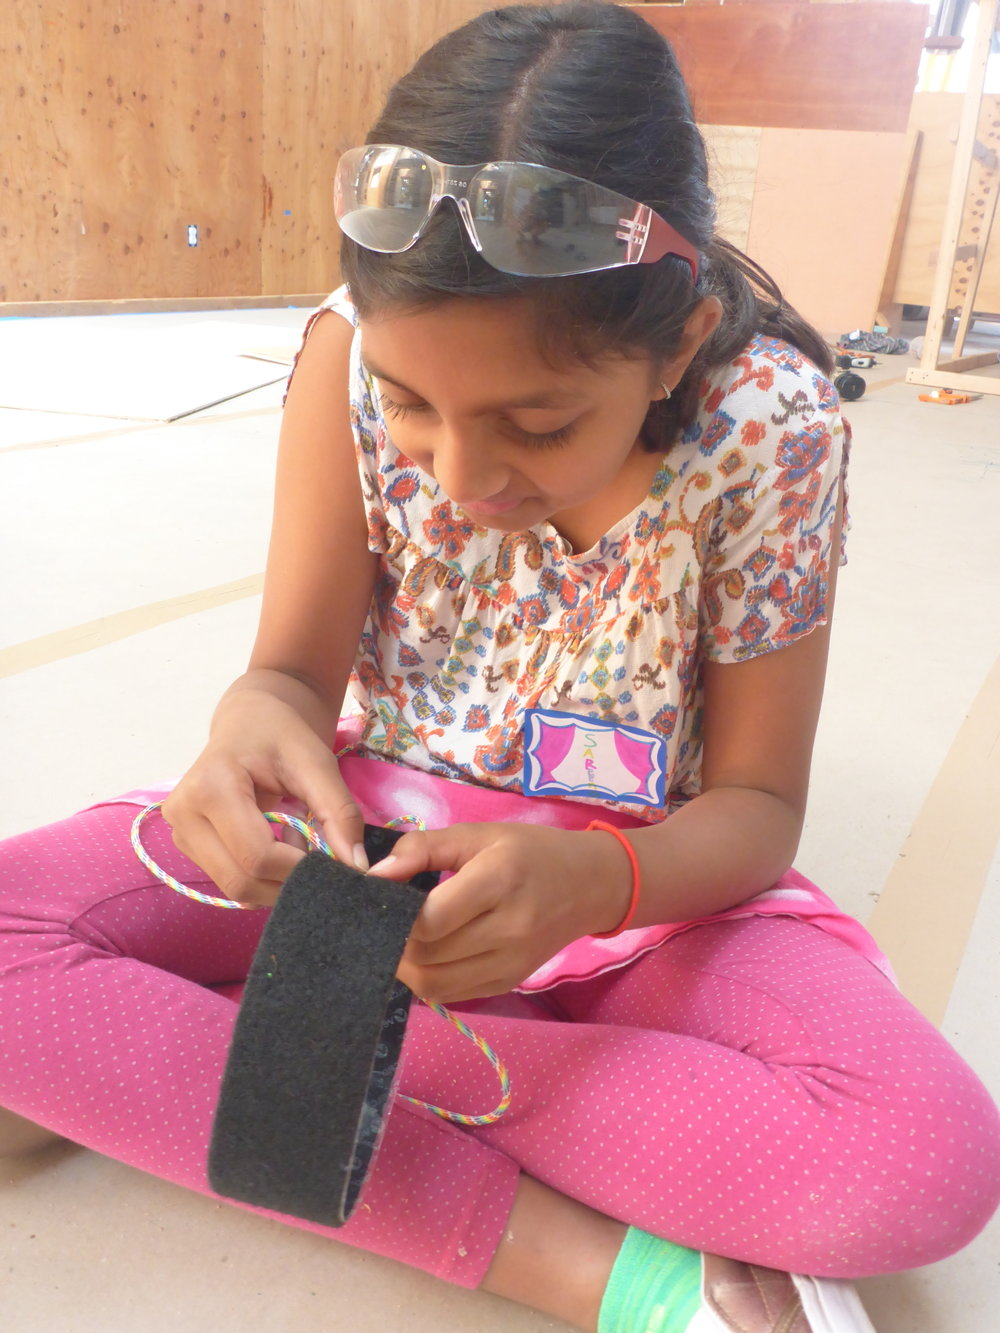 Meanwhile, tons of interesting stuff was happening over in the flywall group. Sareena got to work on designing and prototyping some wrist and ankle bands that can be used to climb the velcro on the flywall.